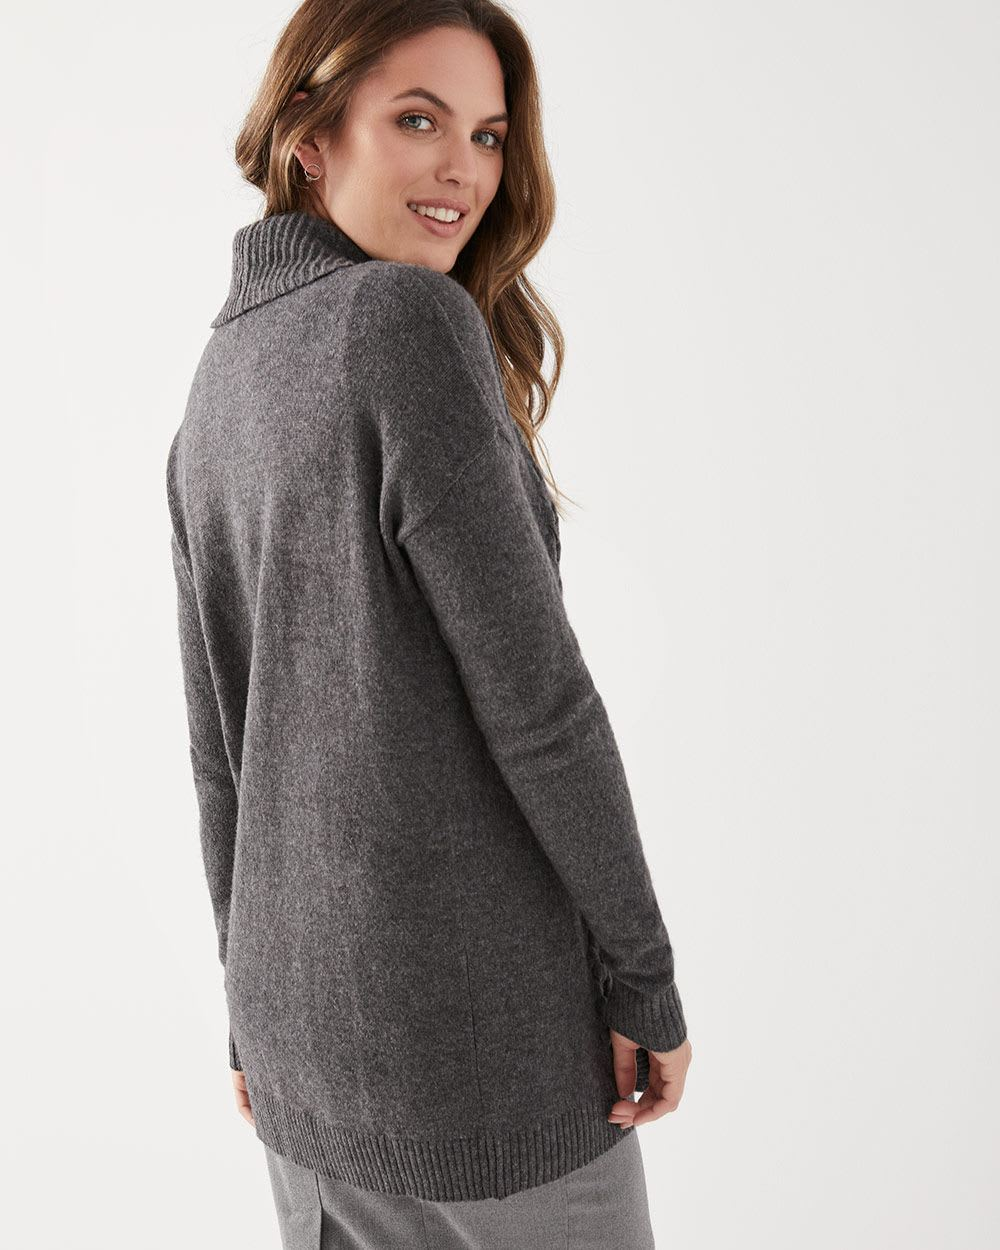 Cashmere-like braided cardigan